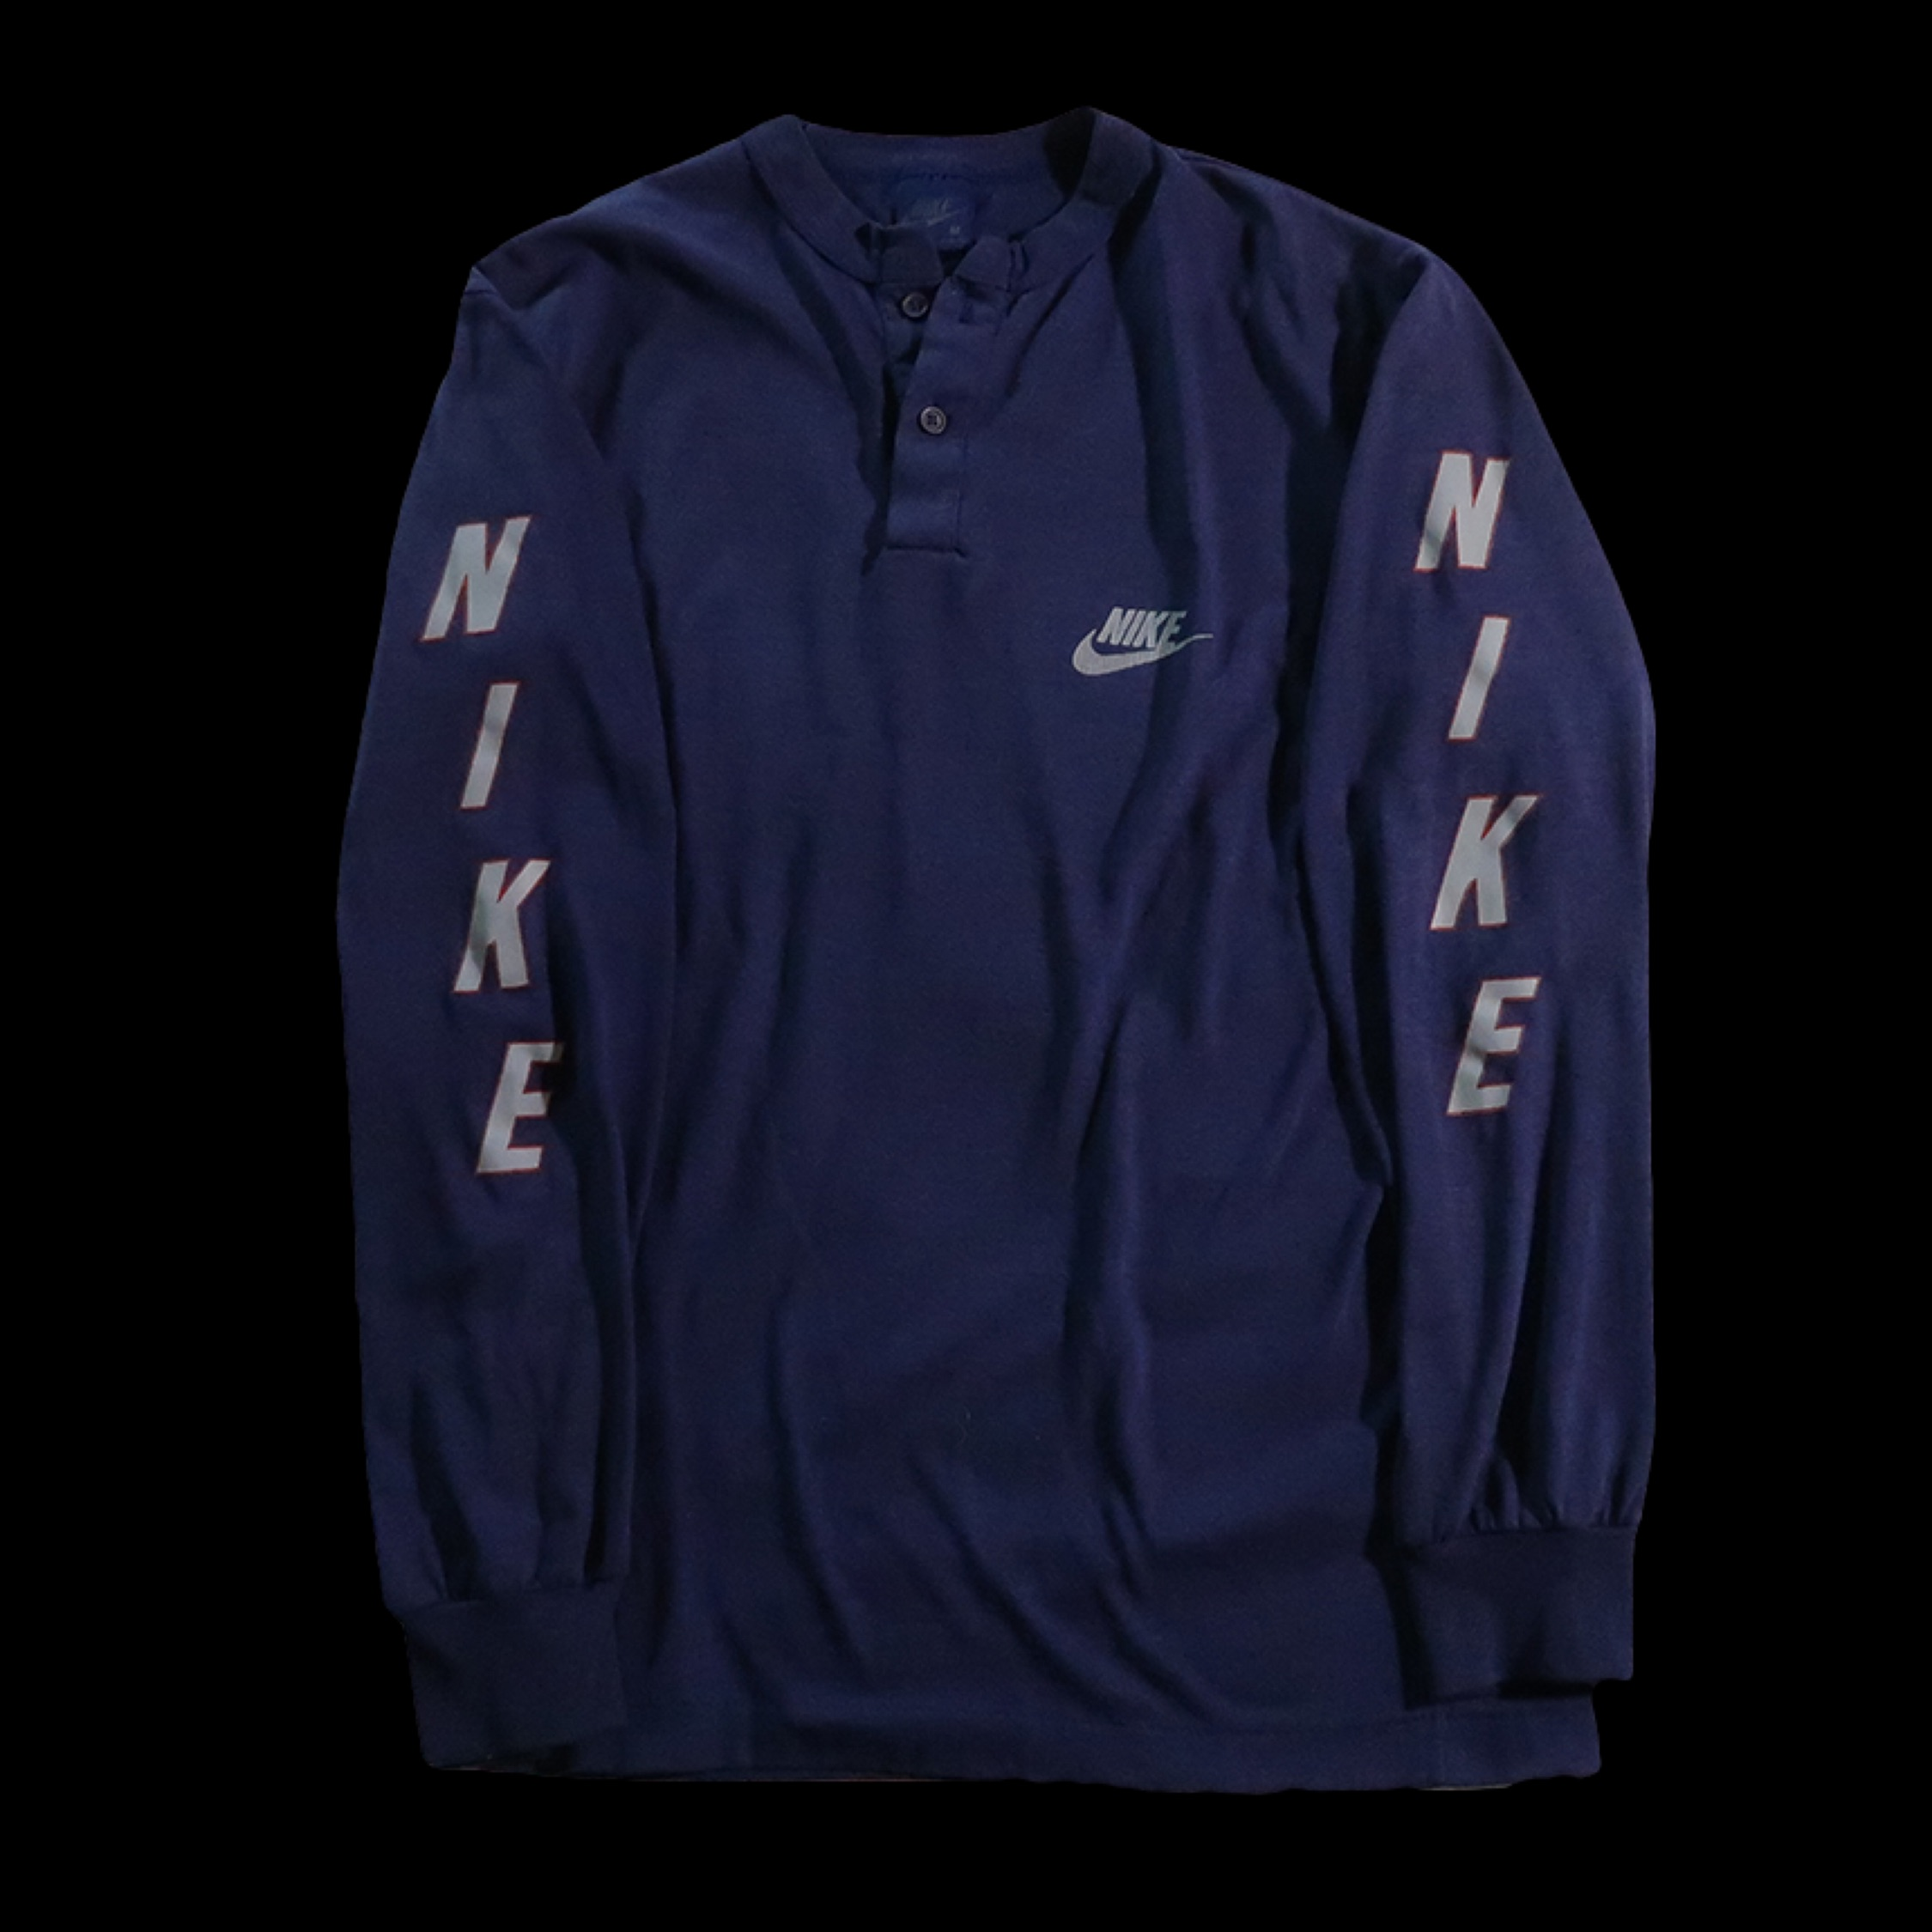 5afc535e3 Vintage Nike Navy Sleeve Spellout Long Sleeve